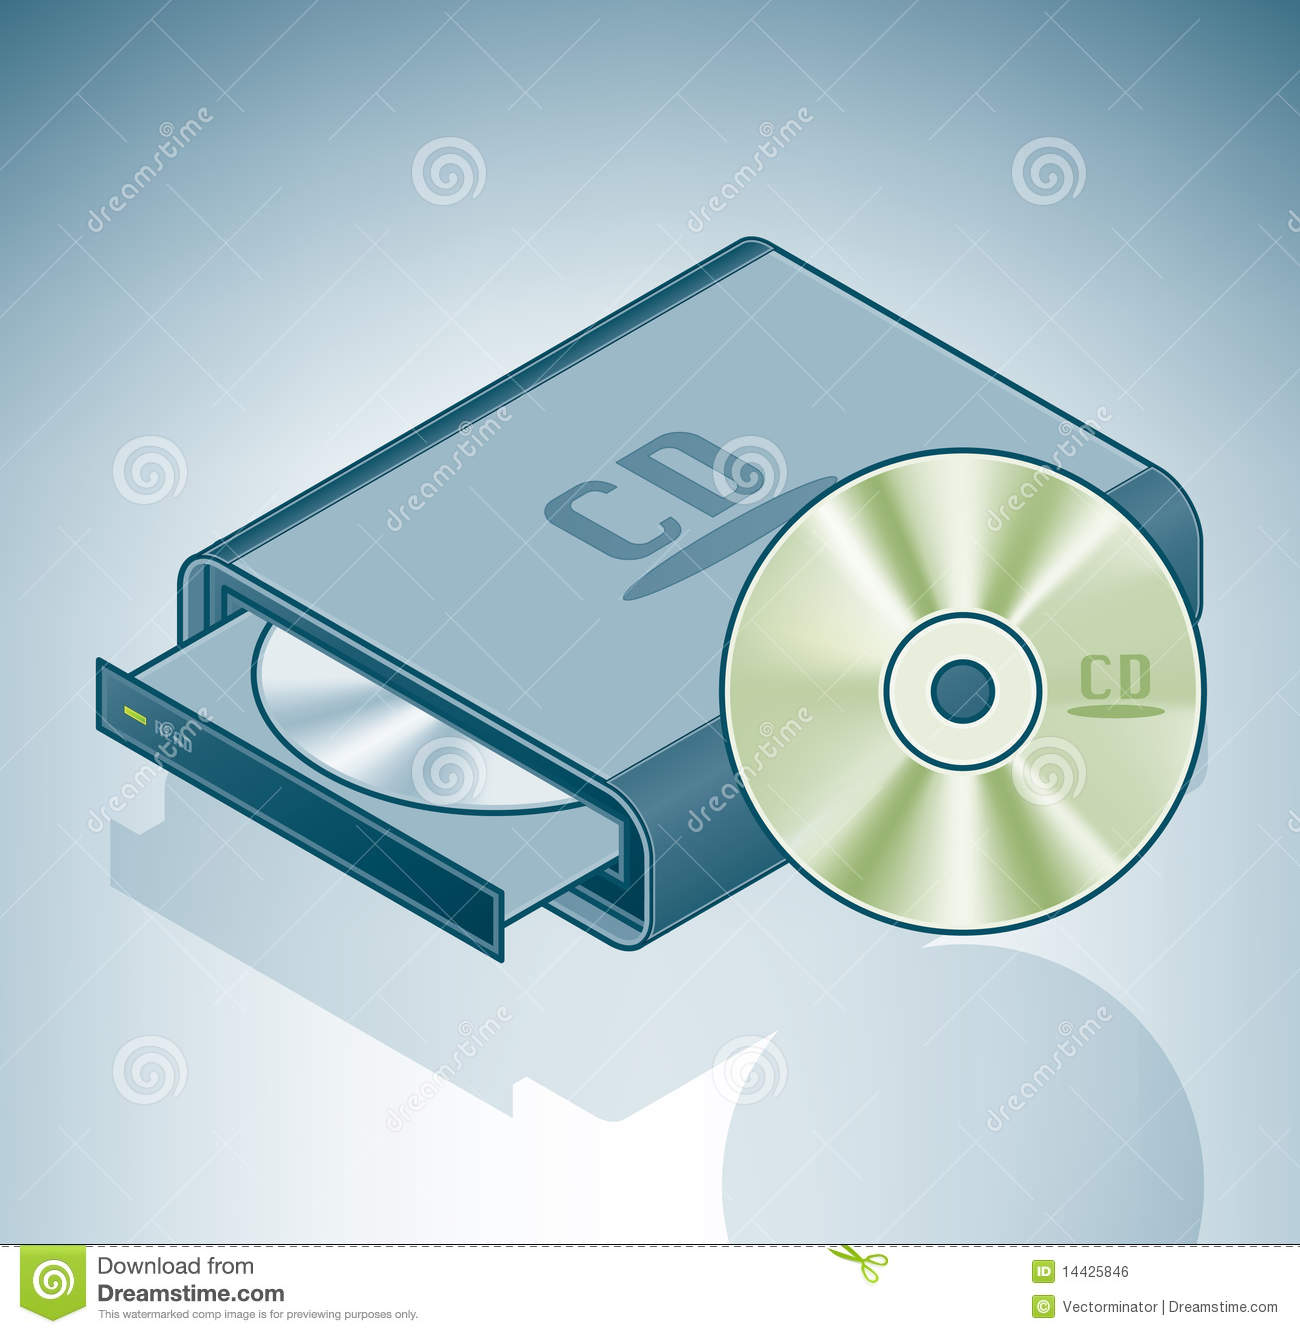 how to set cd rom as e drive